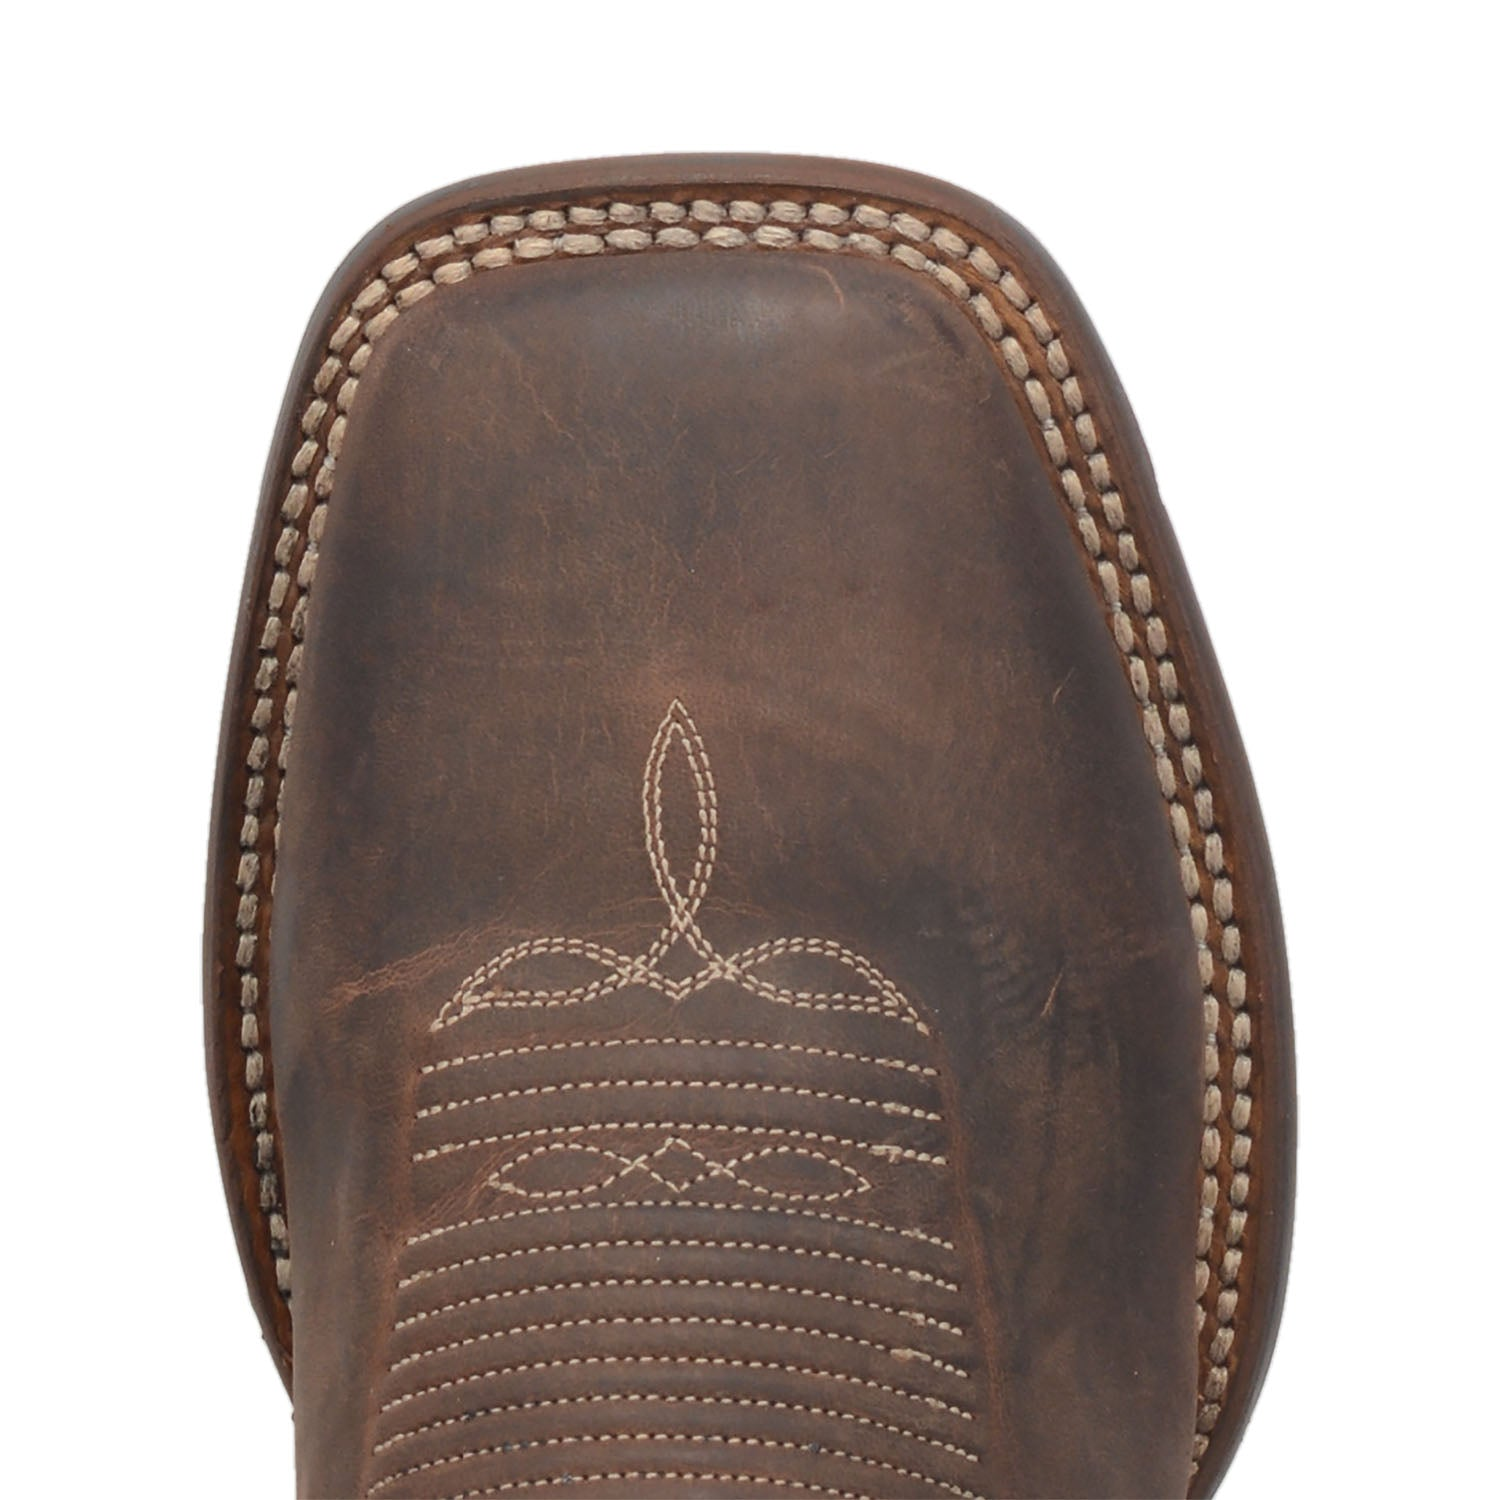 GARRISON LEATHER BOOT 15973511528490